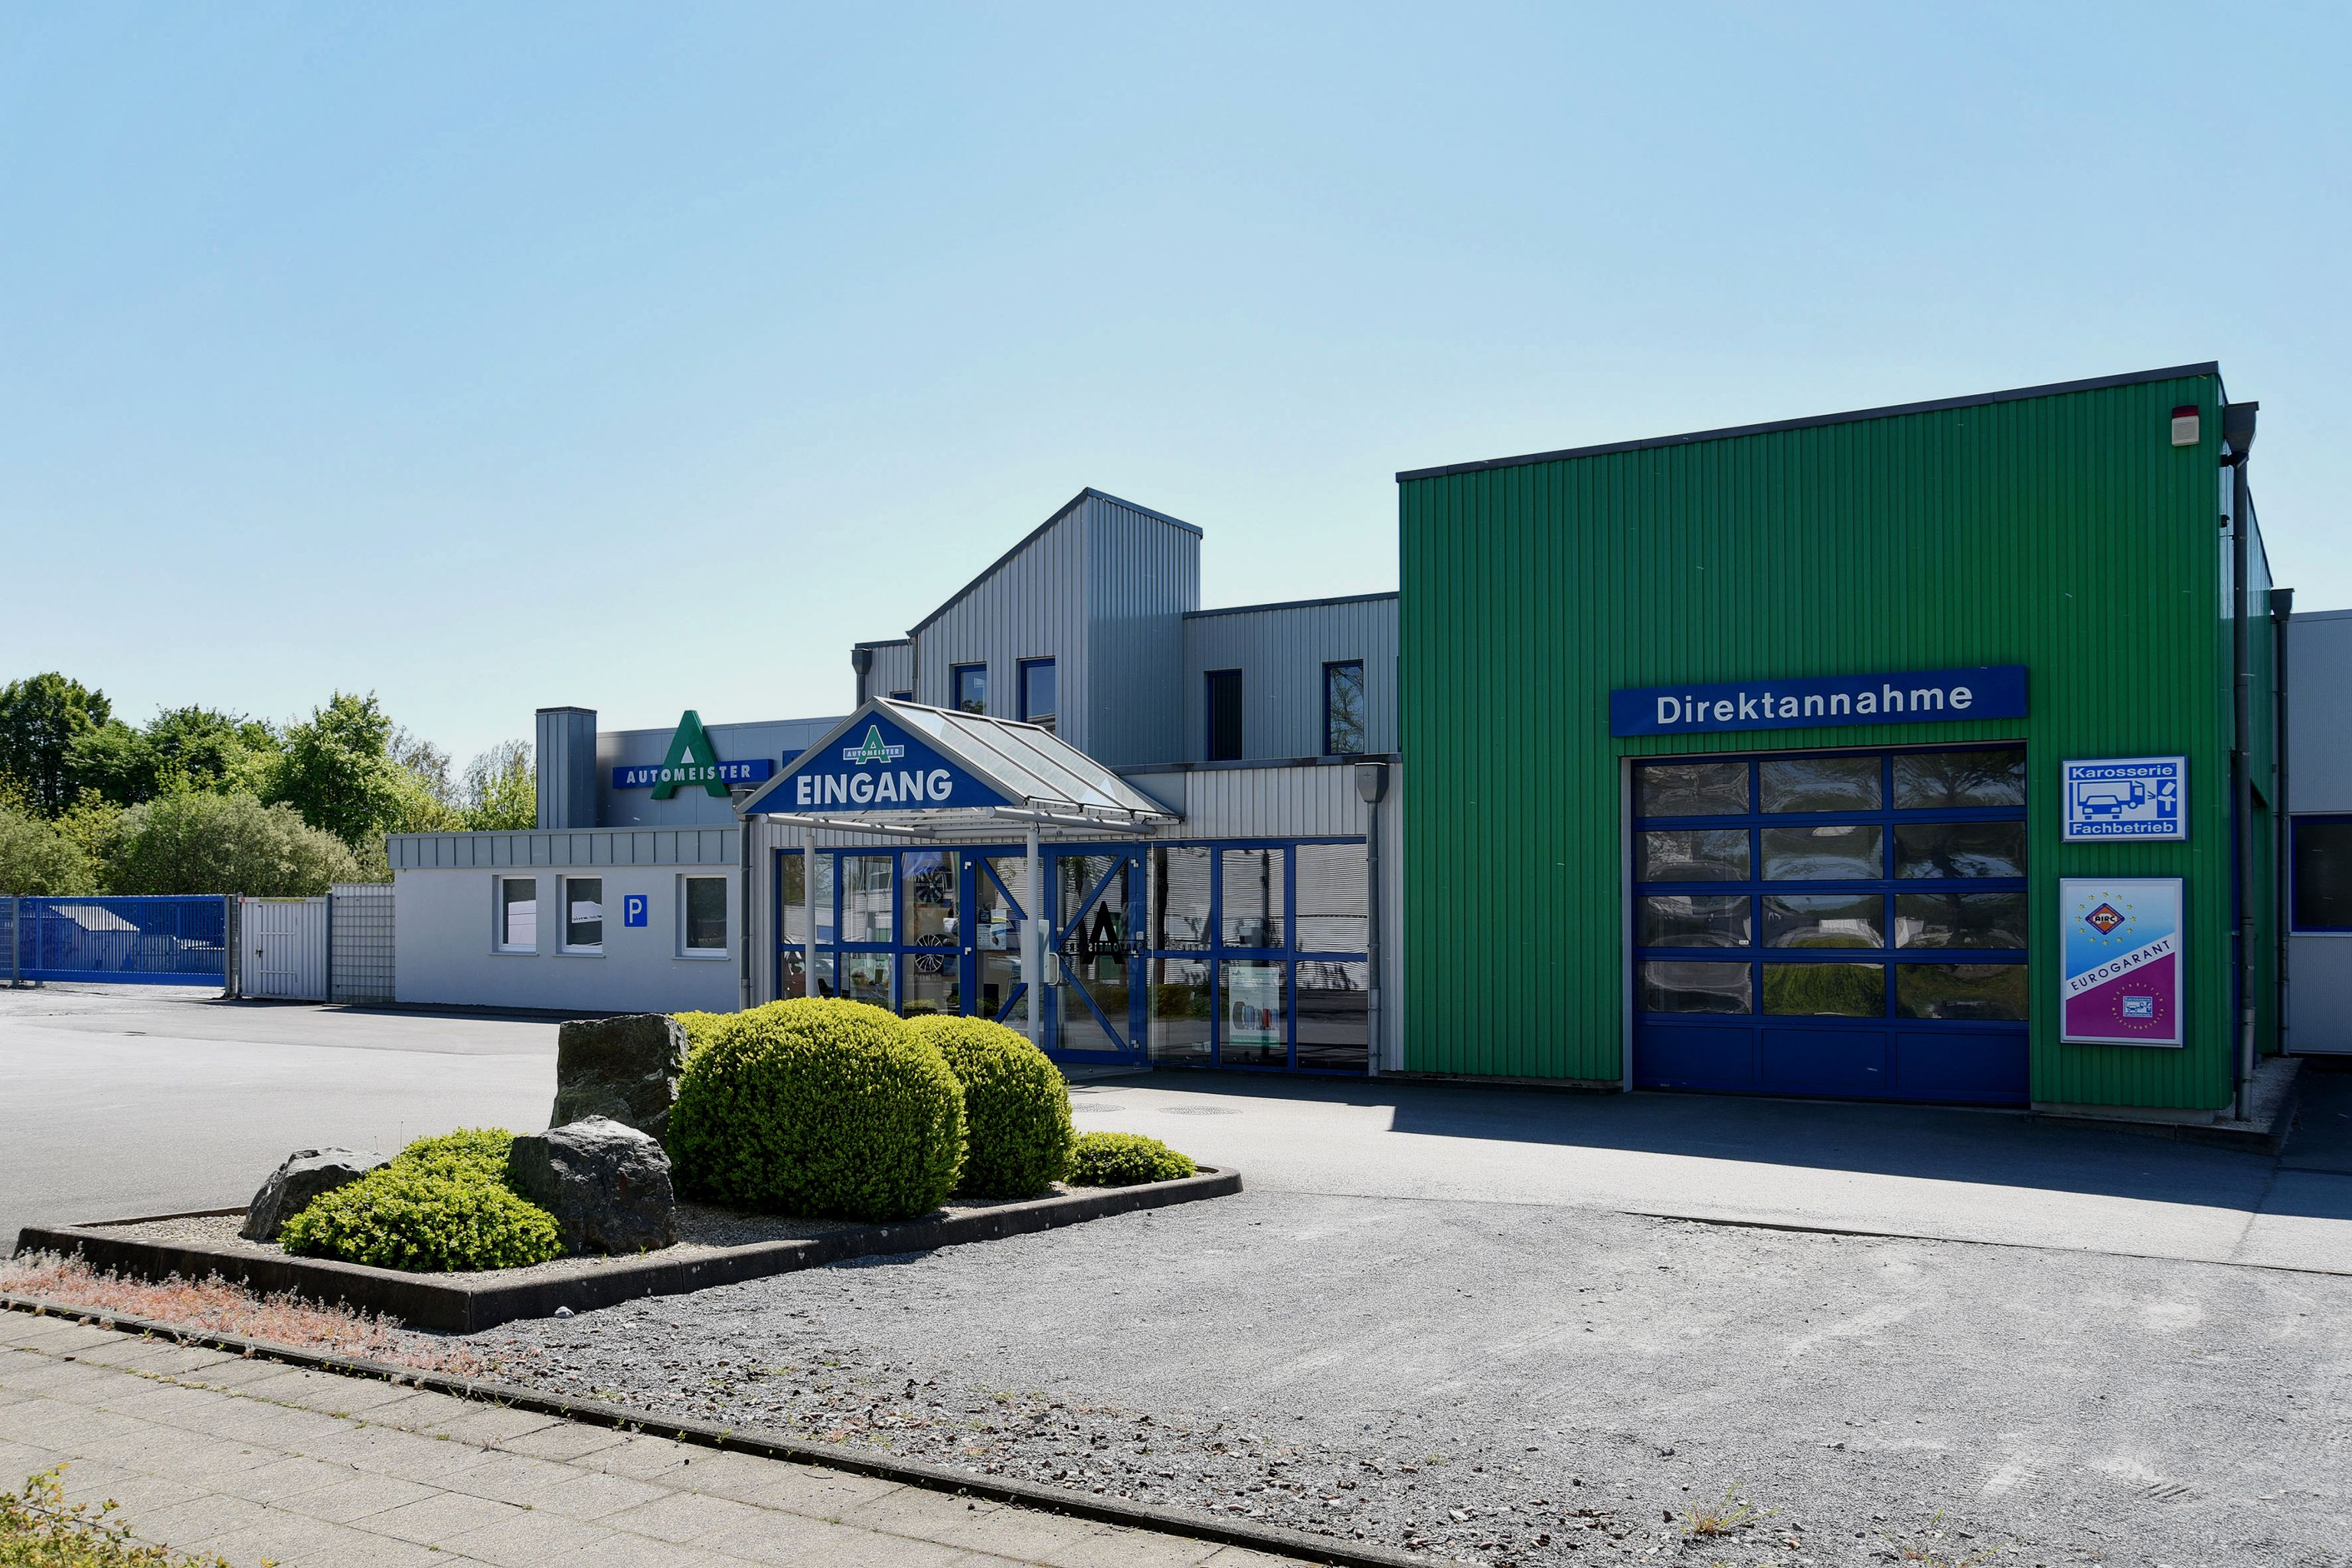 Automeister Deppe